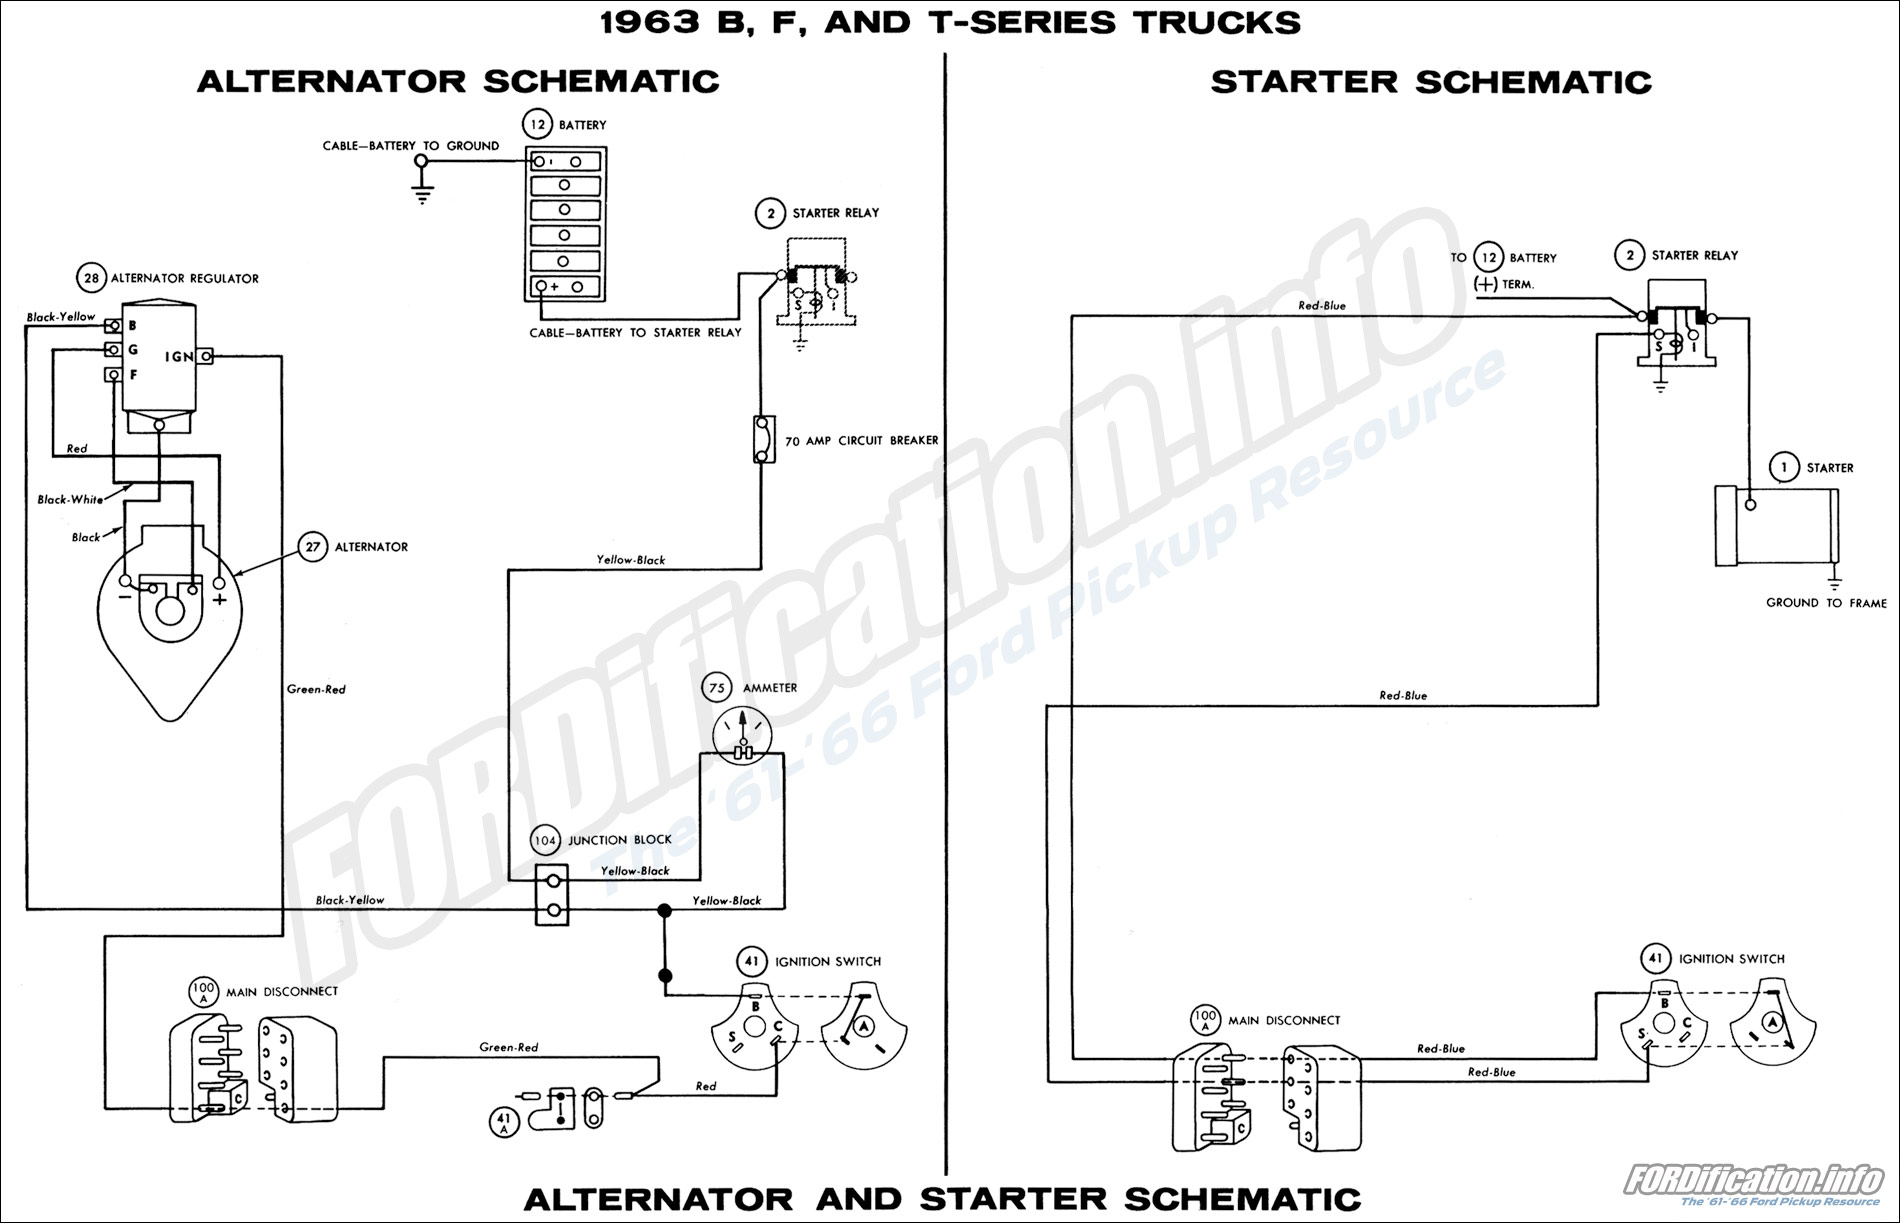 1985 Ford Alternator Wiring Diagram from www.fordification.info